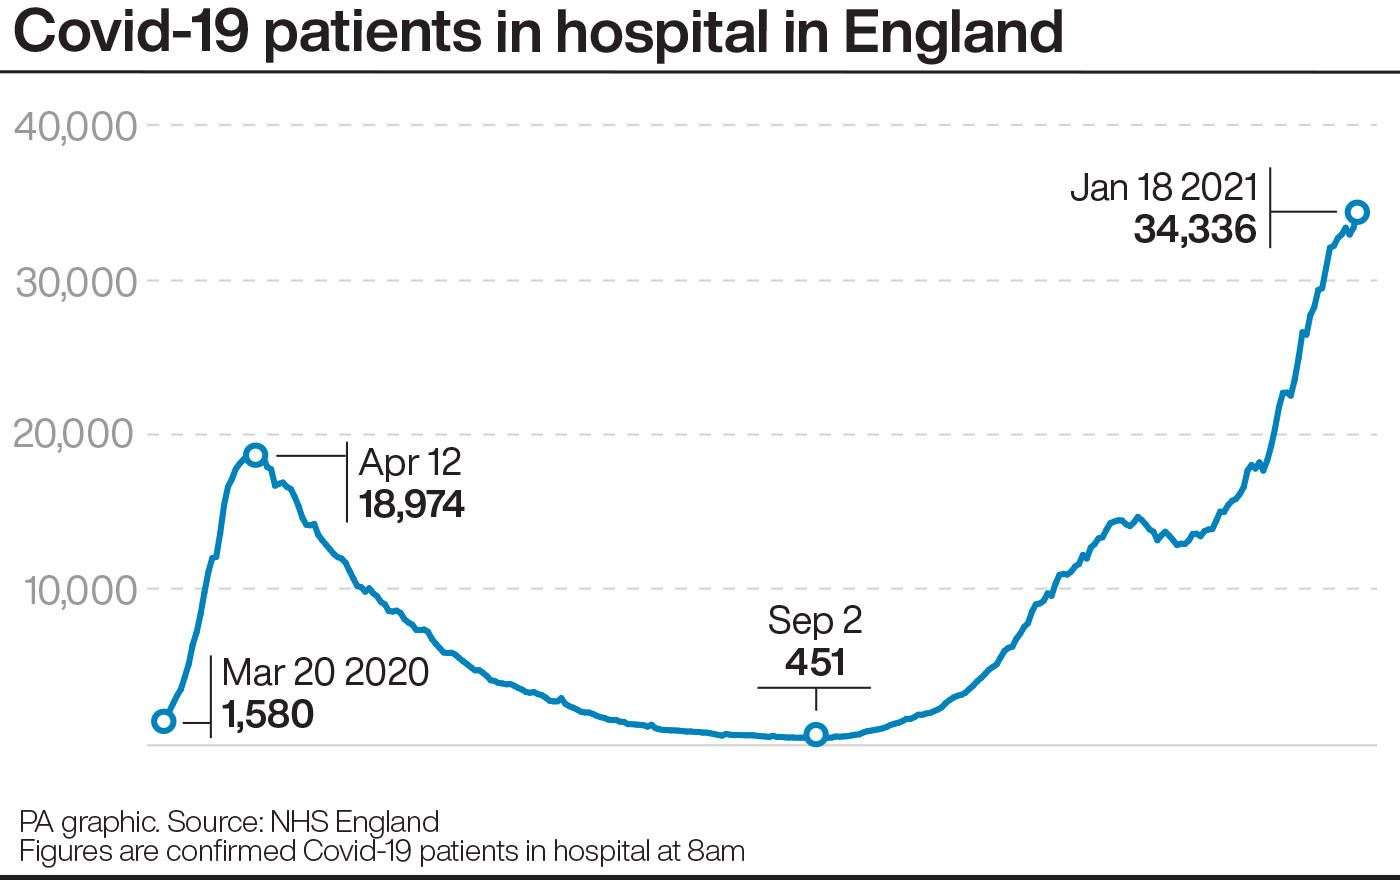 Covid-19 patients in hospital in England.